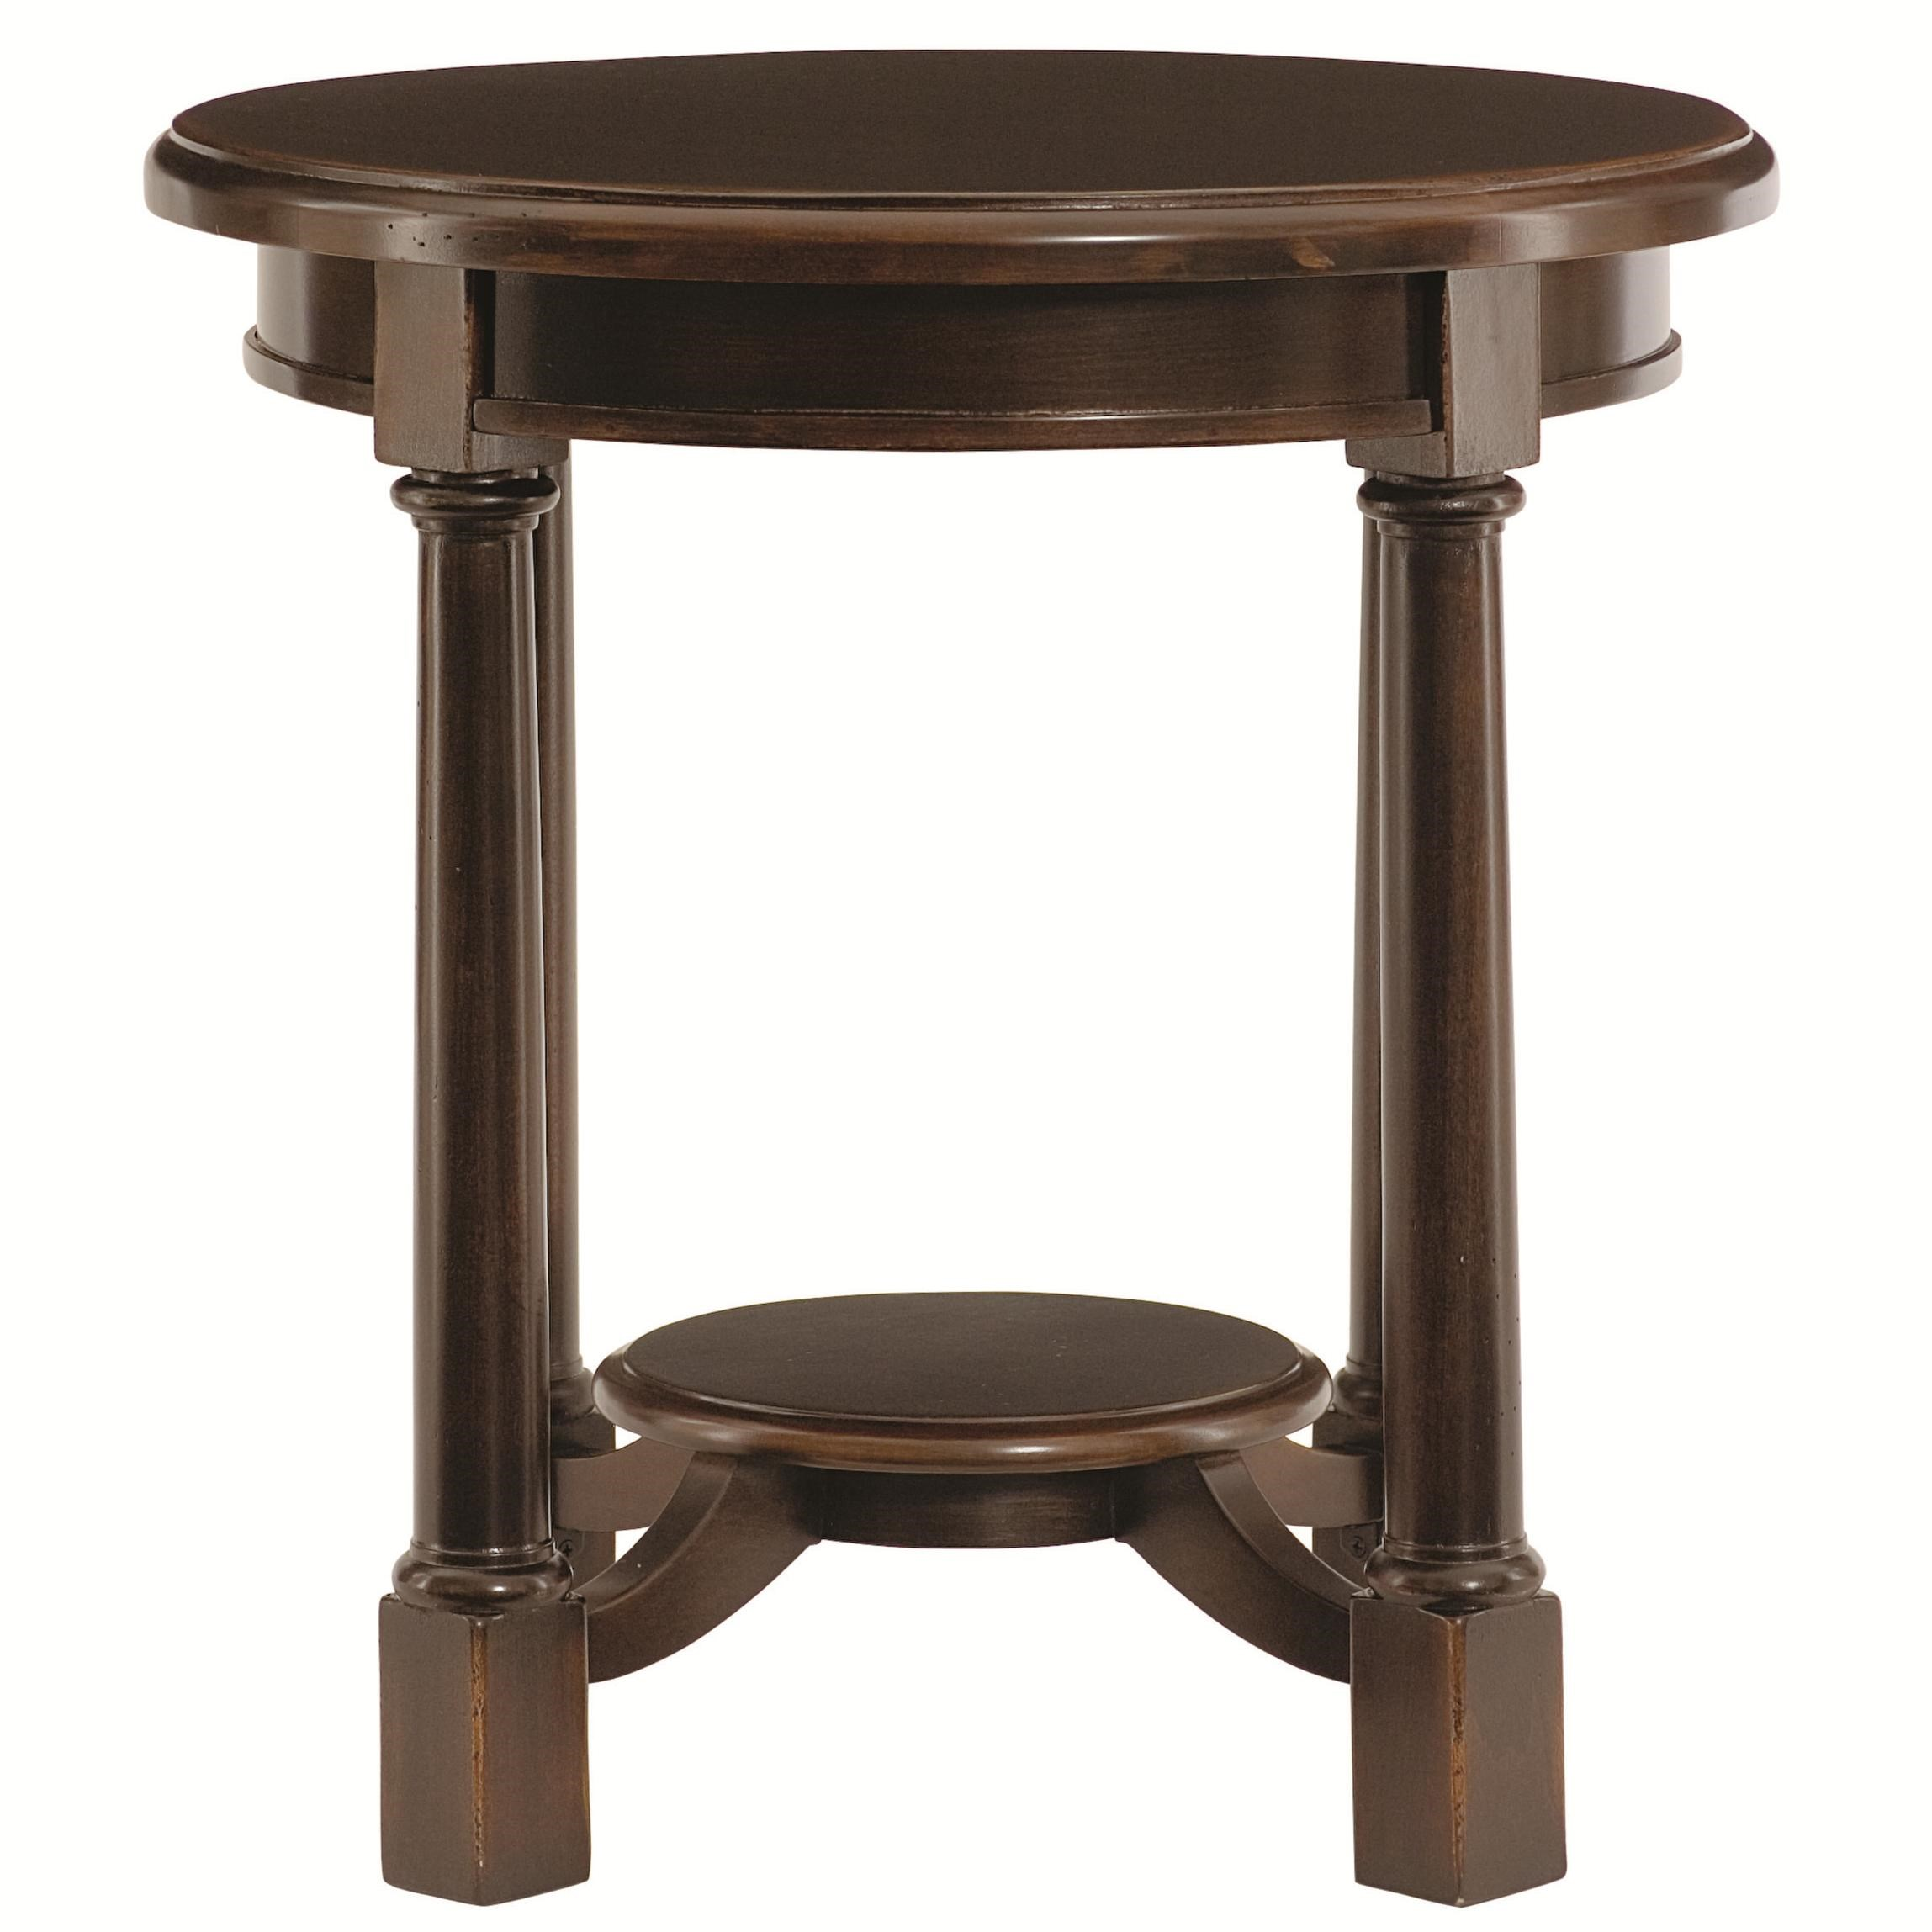 Beau Bernhardt Pacific Canyon Round Side Table With Shelf